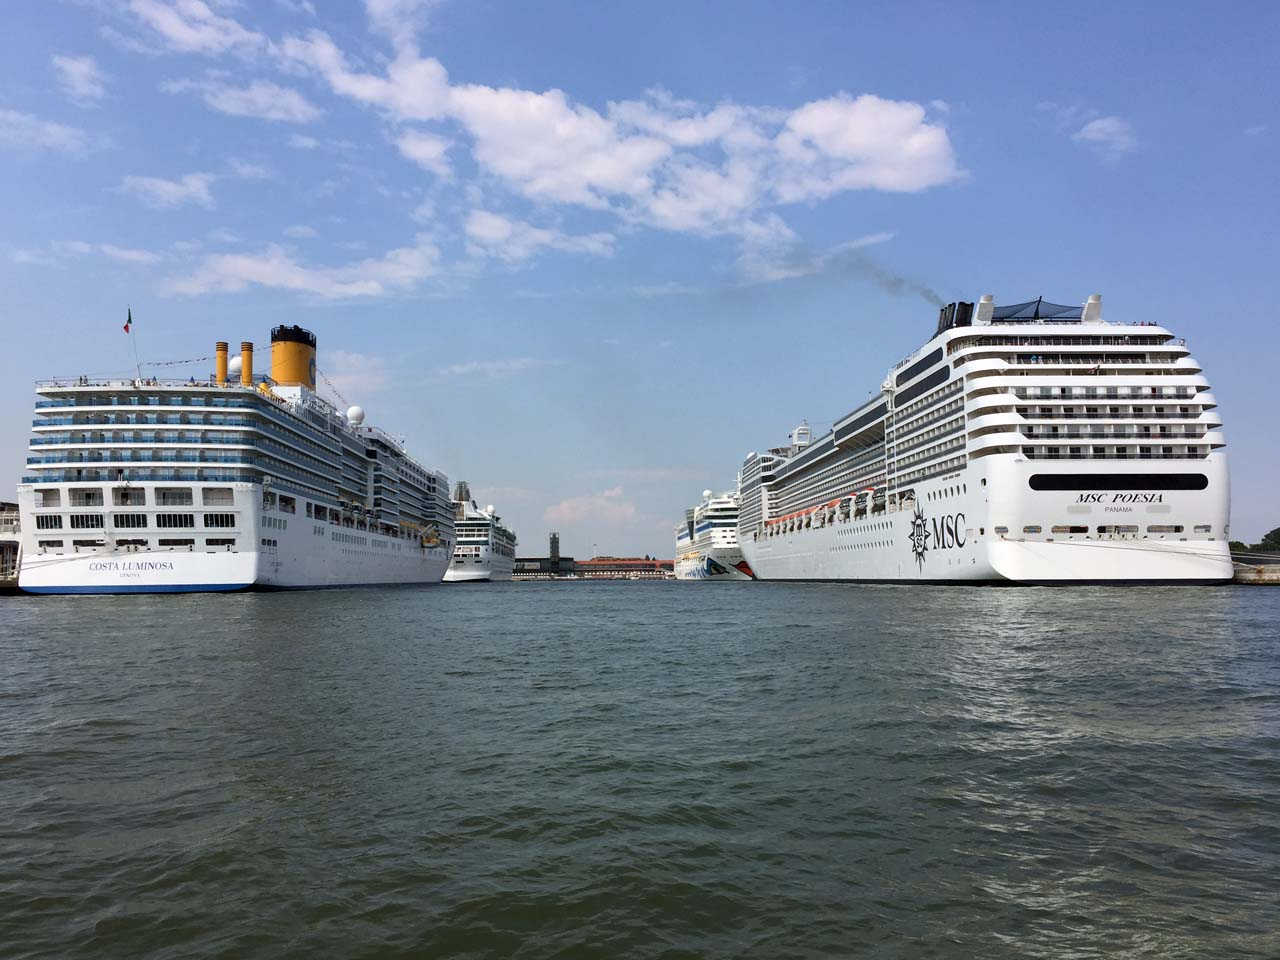 Cruise ships abound in the Port of Venice